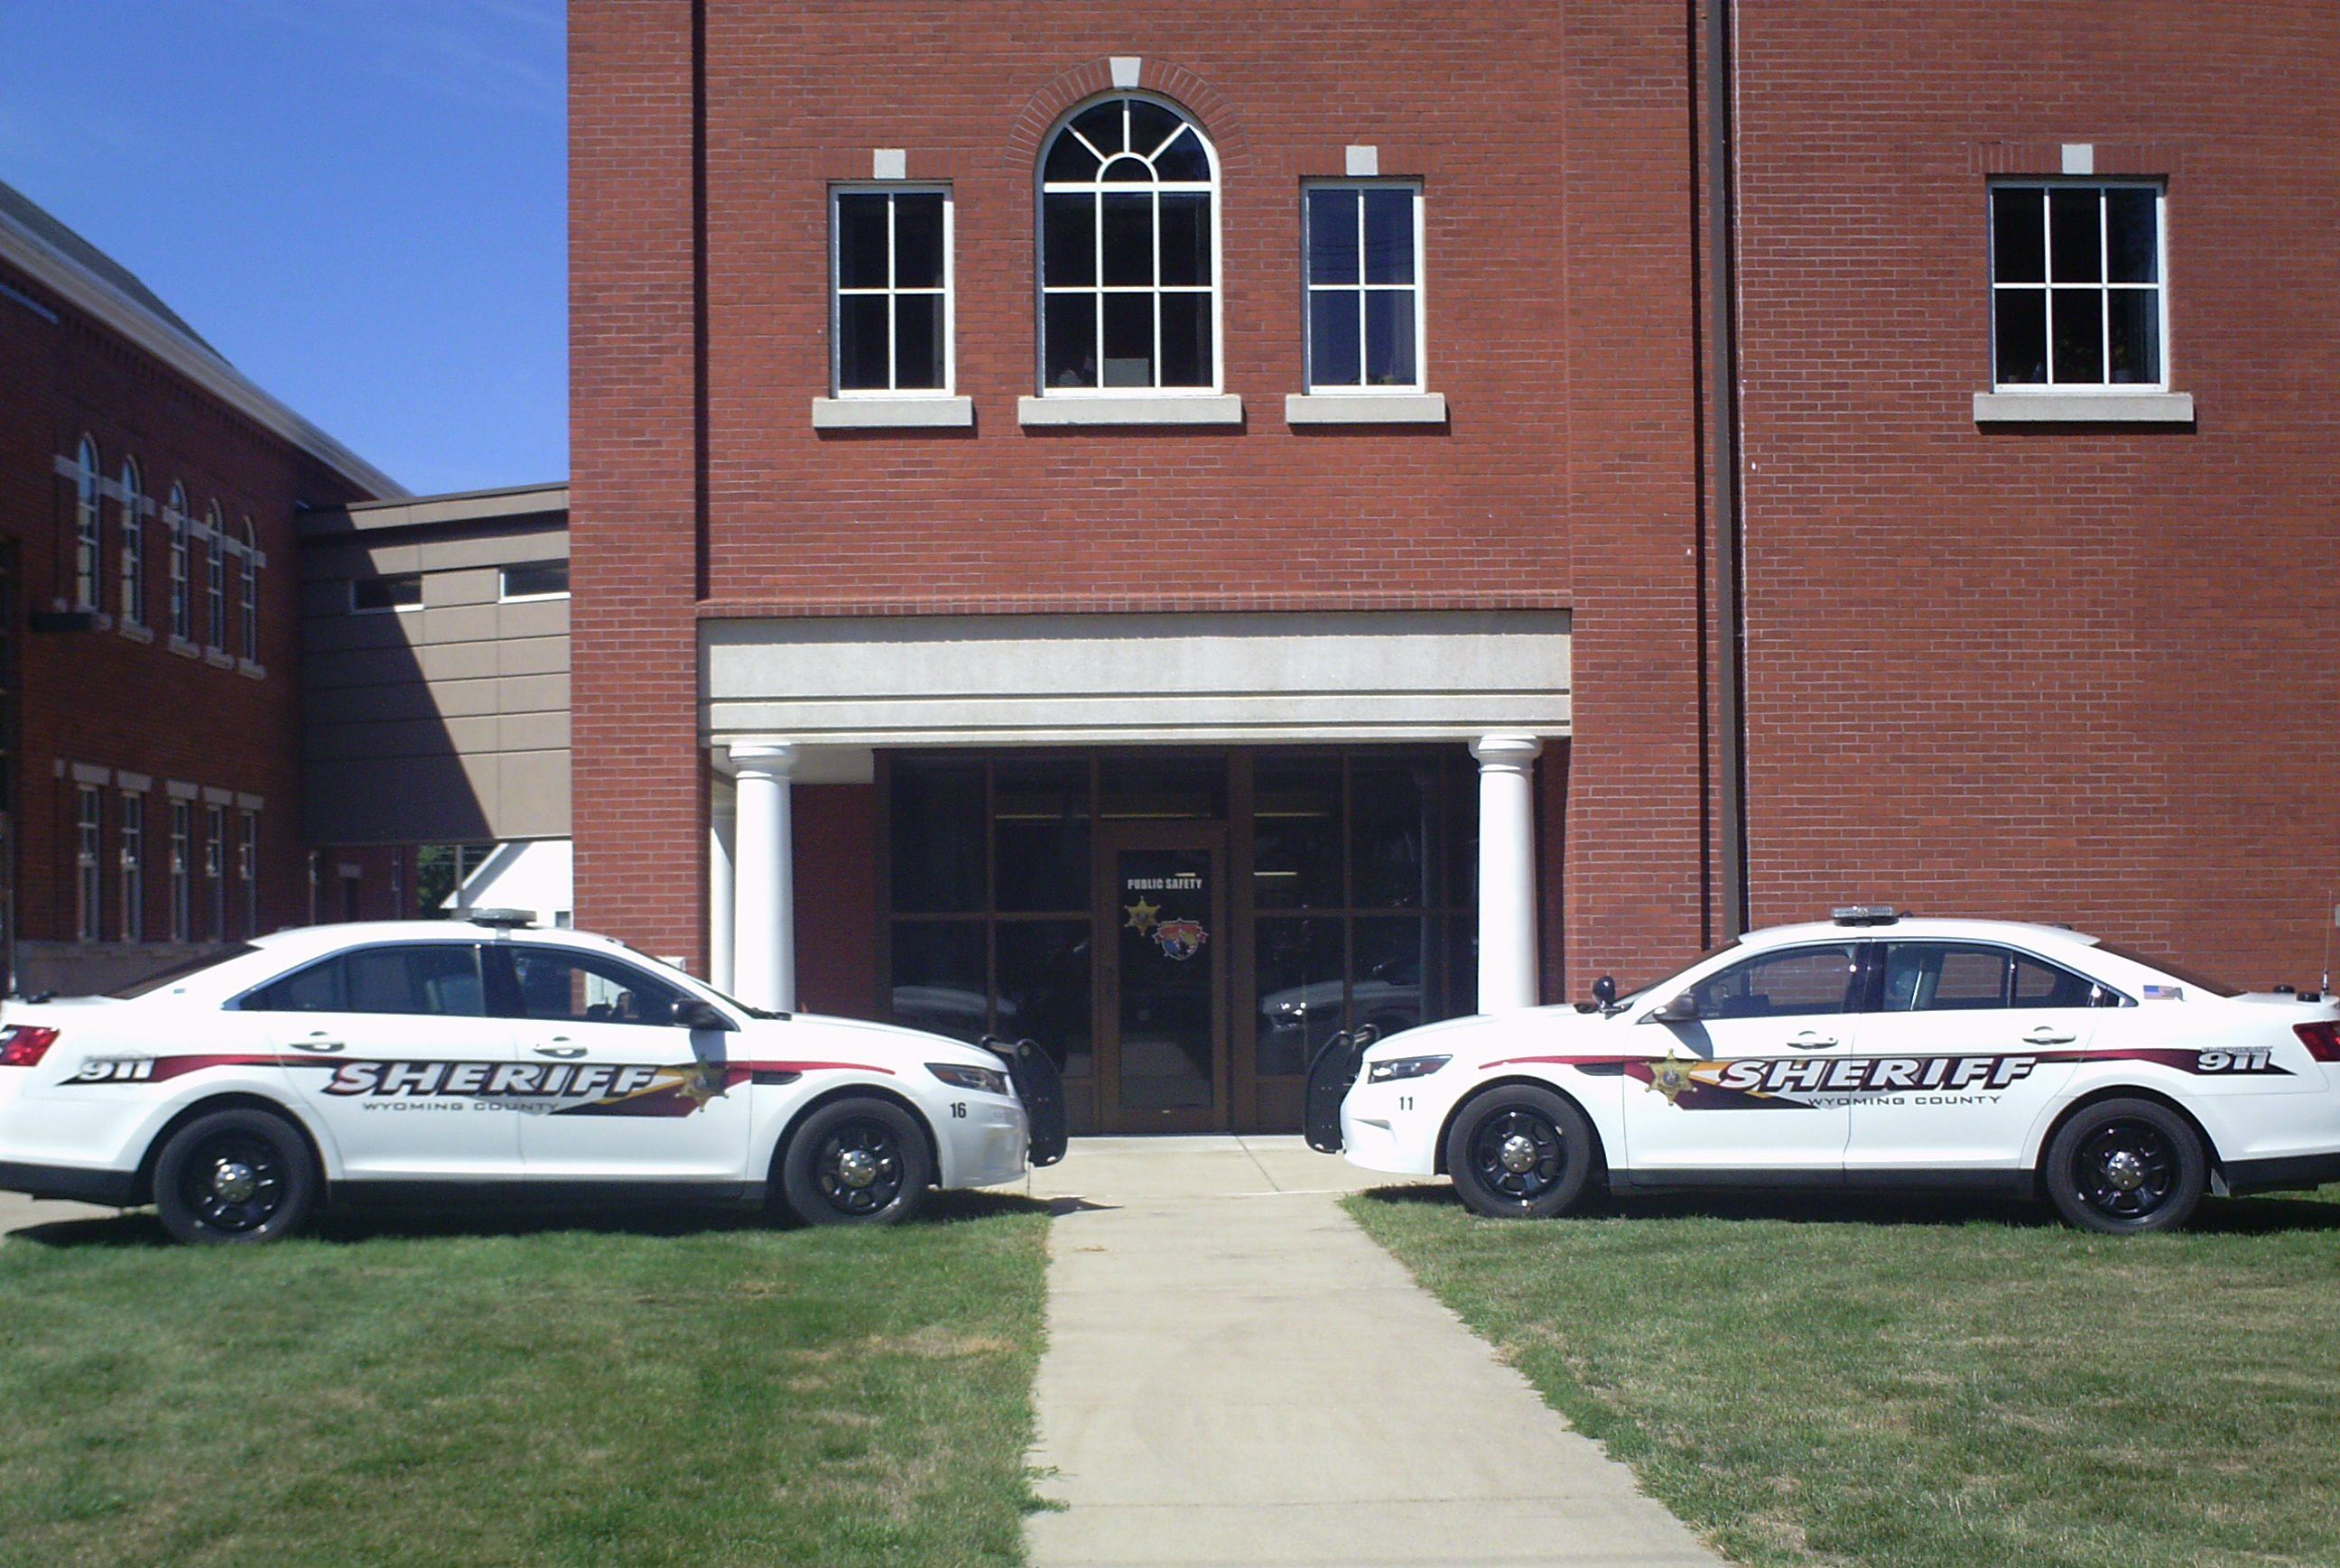 Patrol cars parked in front of brick building